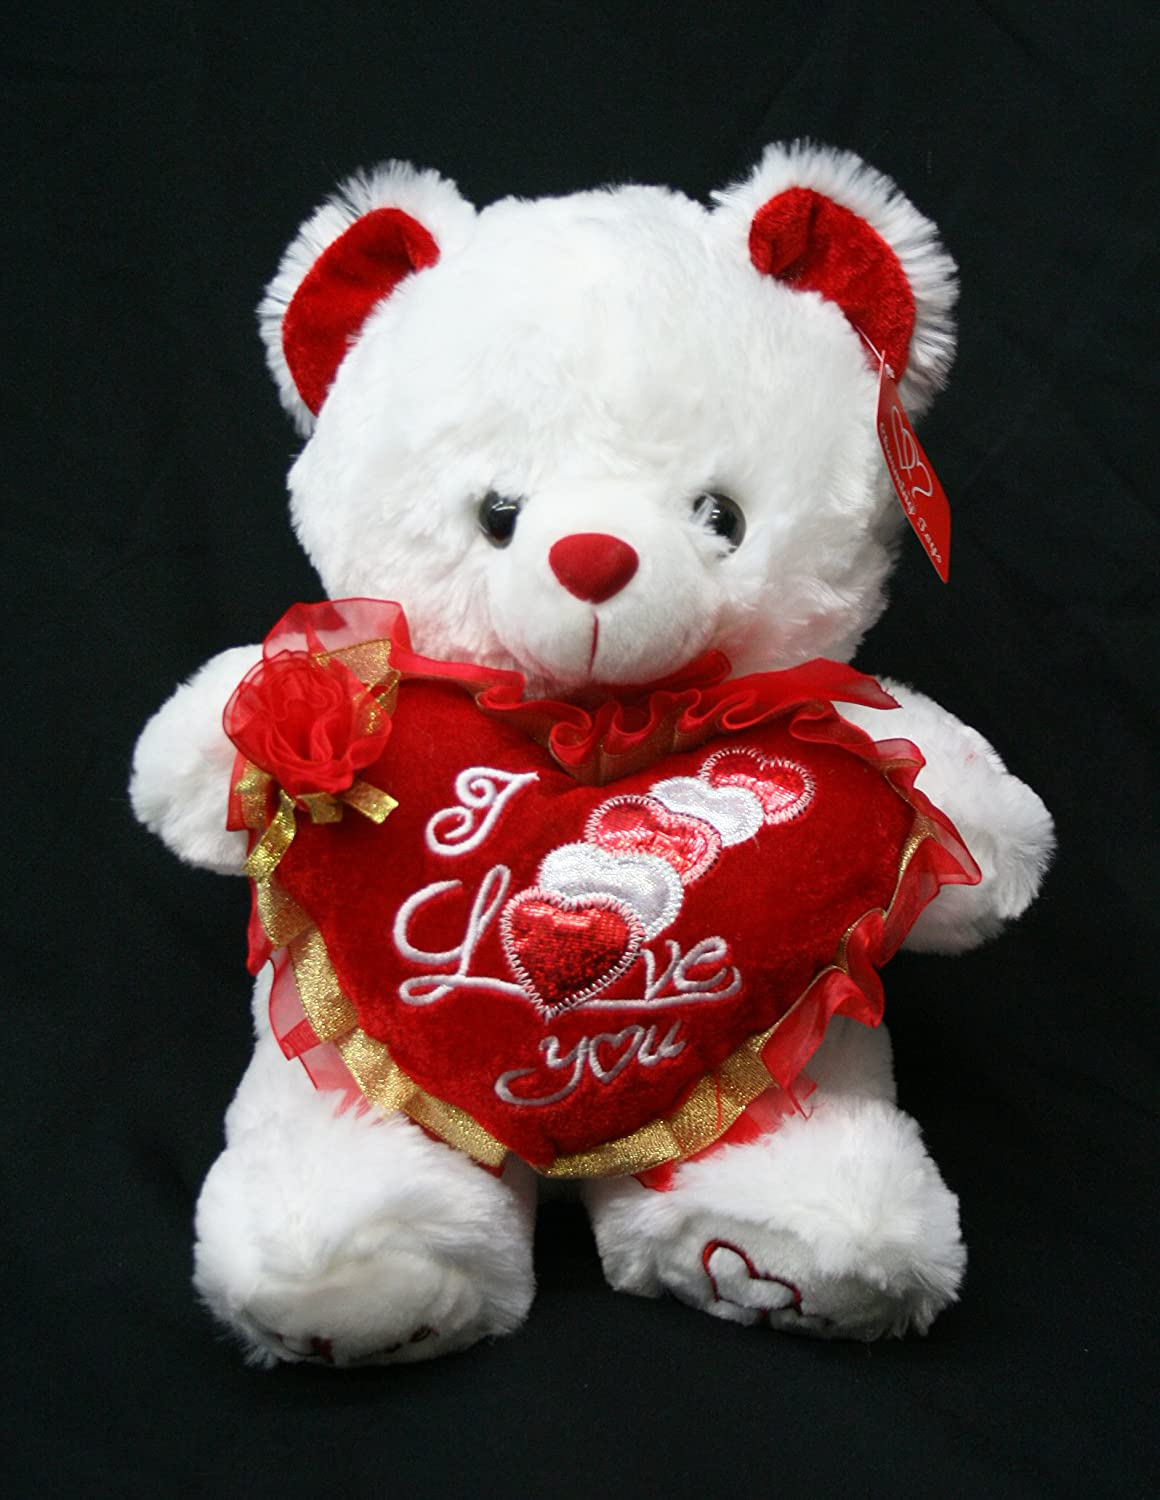 Amazon valentines teddy bear 15 says i love you when amazon valentines teddy bear 15 says i love you when its paw is pressed best valentines day gifts valentines day gifts for her valentines negle Gallery